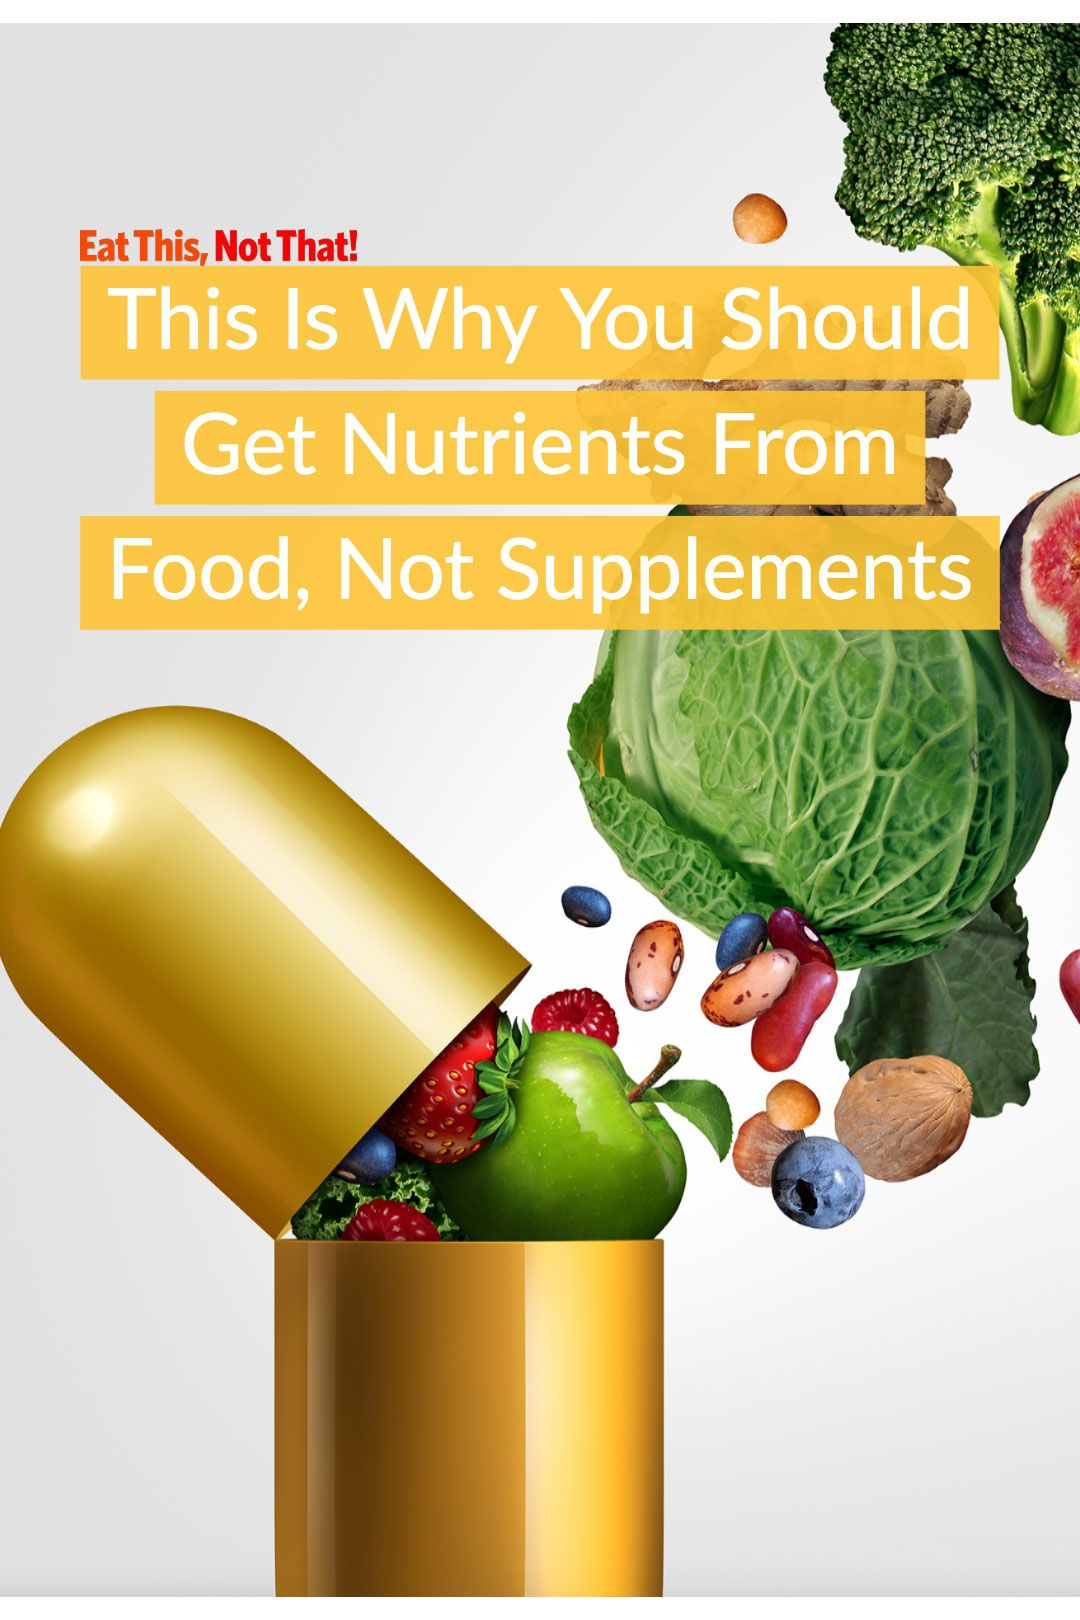 Supplements Vs Food The Best Way To Get Nutrients Eat This Not That Nutrient Nutrition Motivation Nutritional Supplements